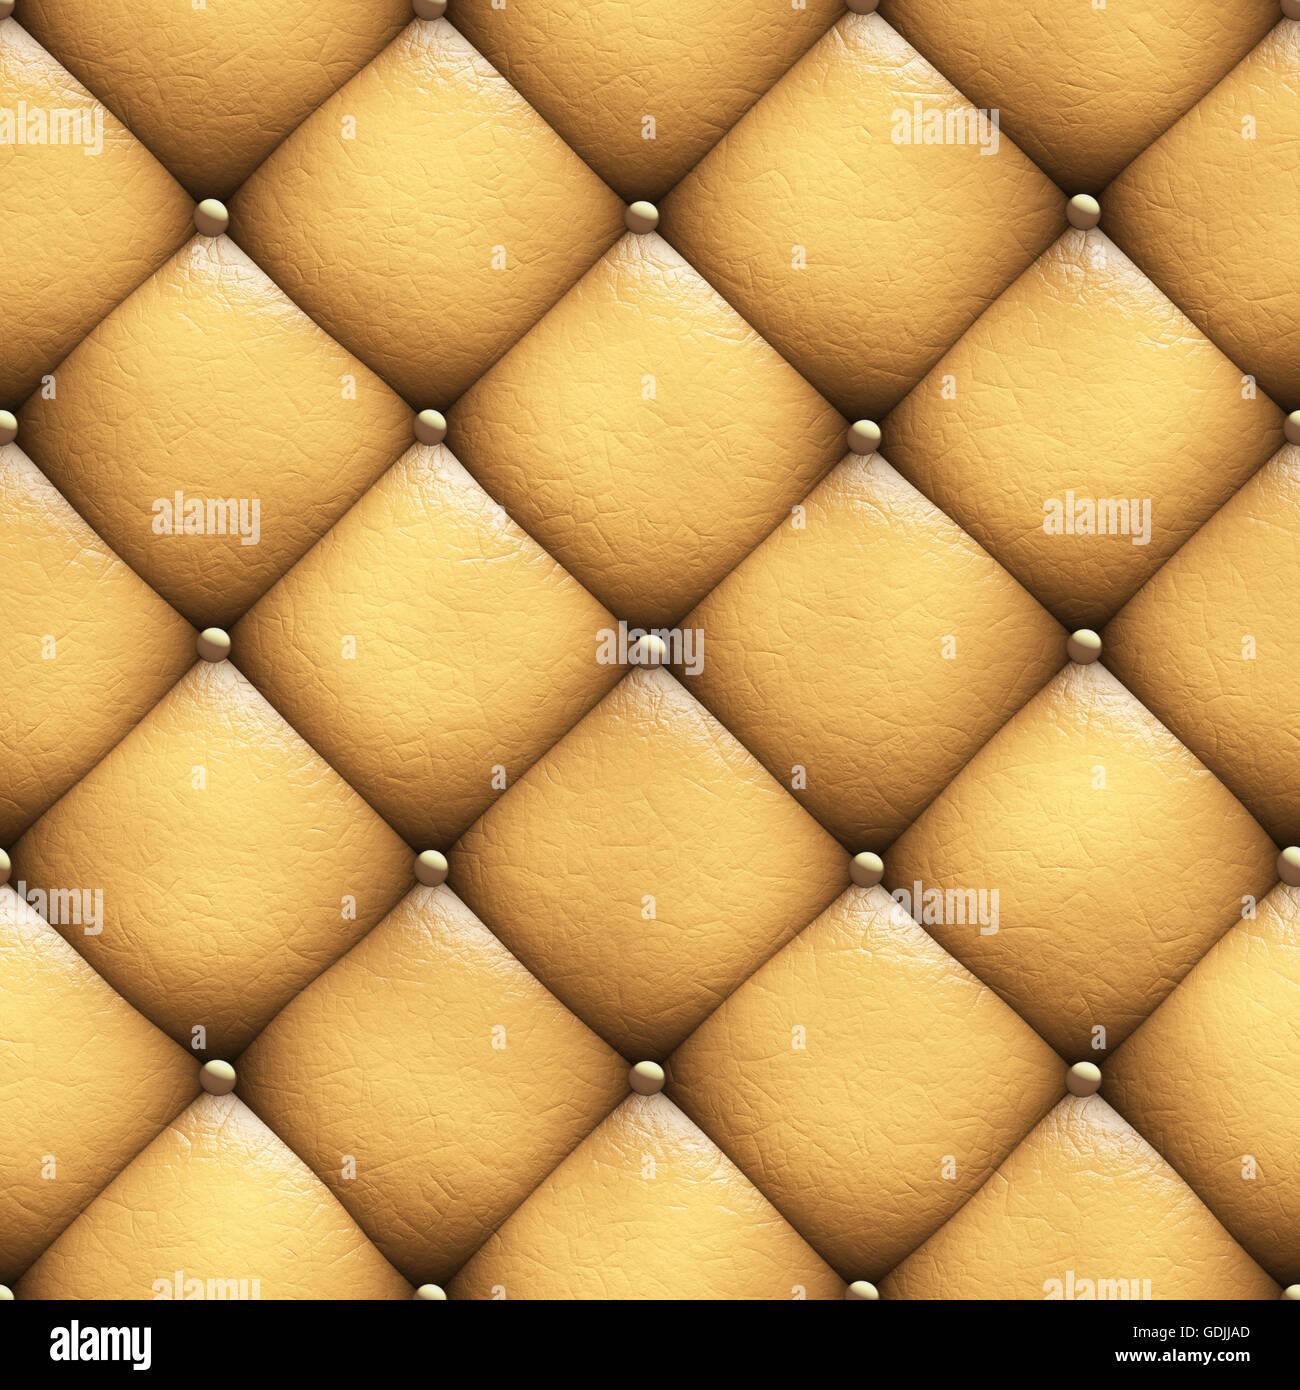 Seamless Texture Leather Upholstery Sofa 3D Illustration